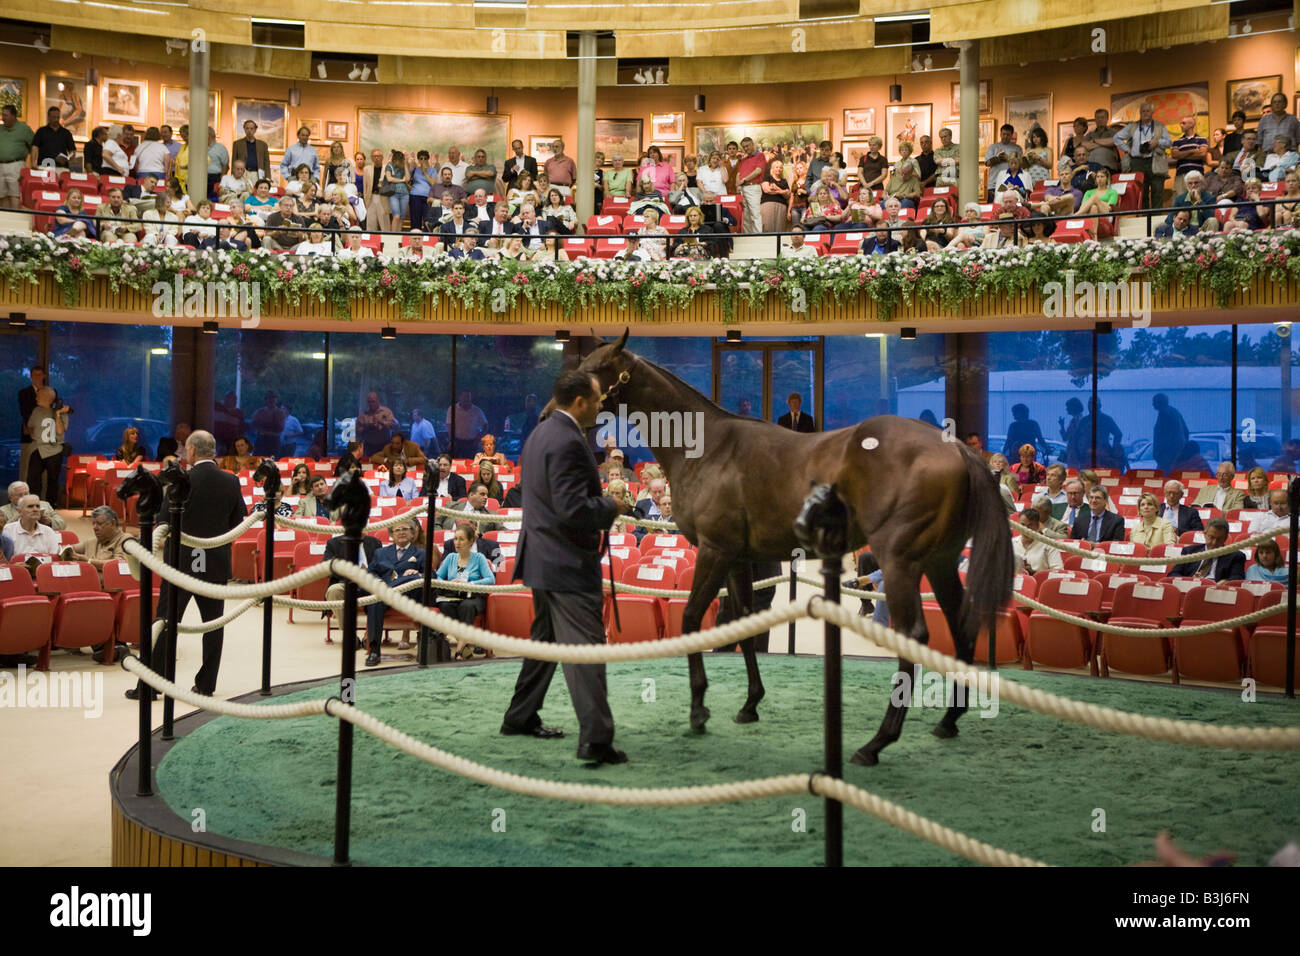 Inside the pavilion at annual Fasig Tipton thoroughbred horse auction Saratoga Springs New York - Stock Image